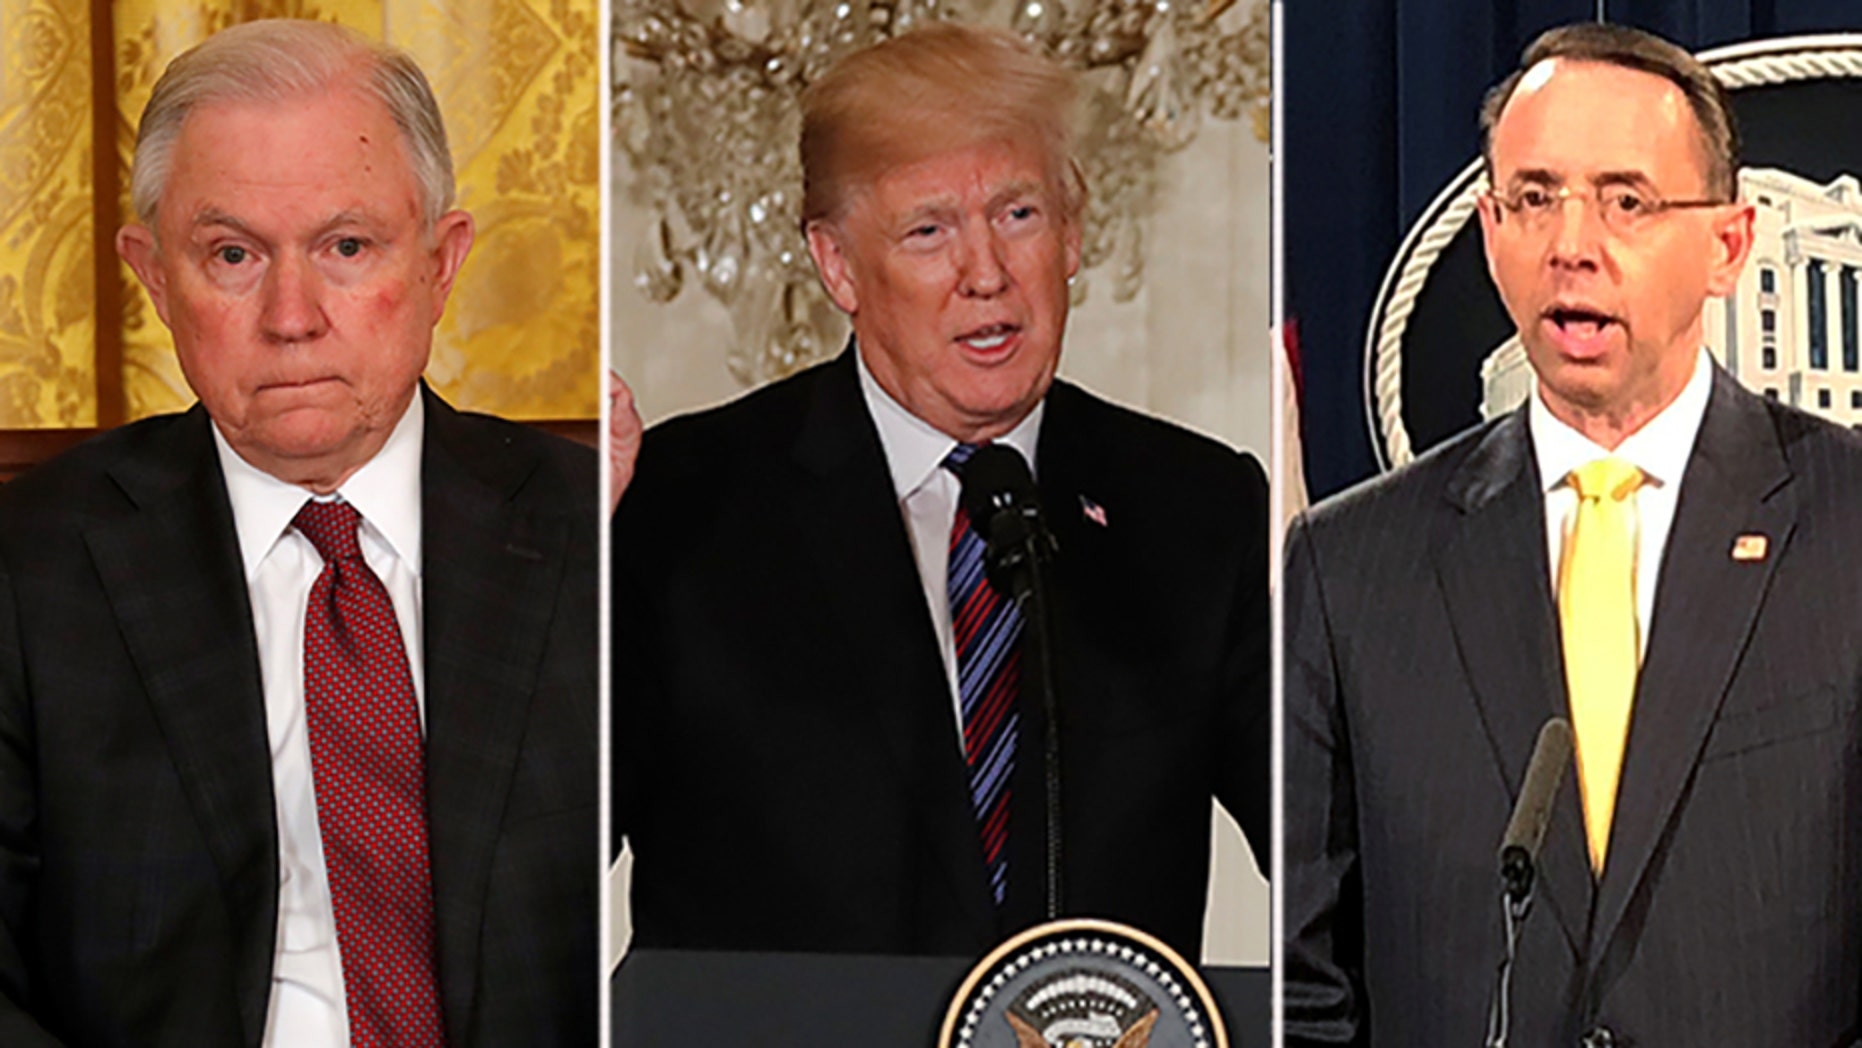 President Trump criticized the Justice Department, noting that he wouldn't stay away forever. Trump, center, has blasted Attorney General Jeff Sessions, left, for recusing himself from the Russia investigation, and reportedly wants to remove Deputy Attorney General Rod Rosenstein, right.